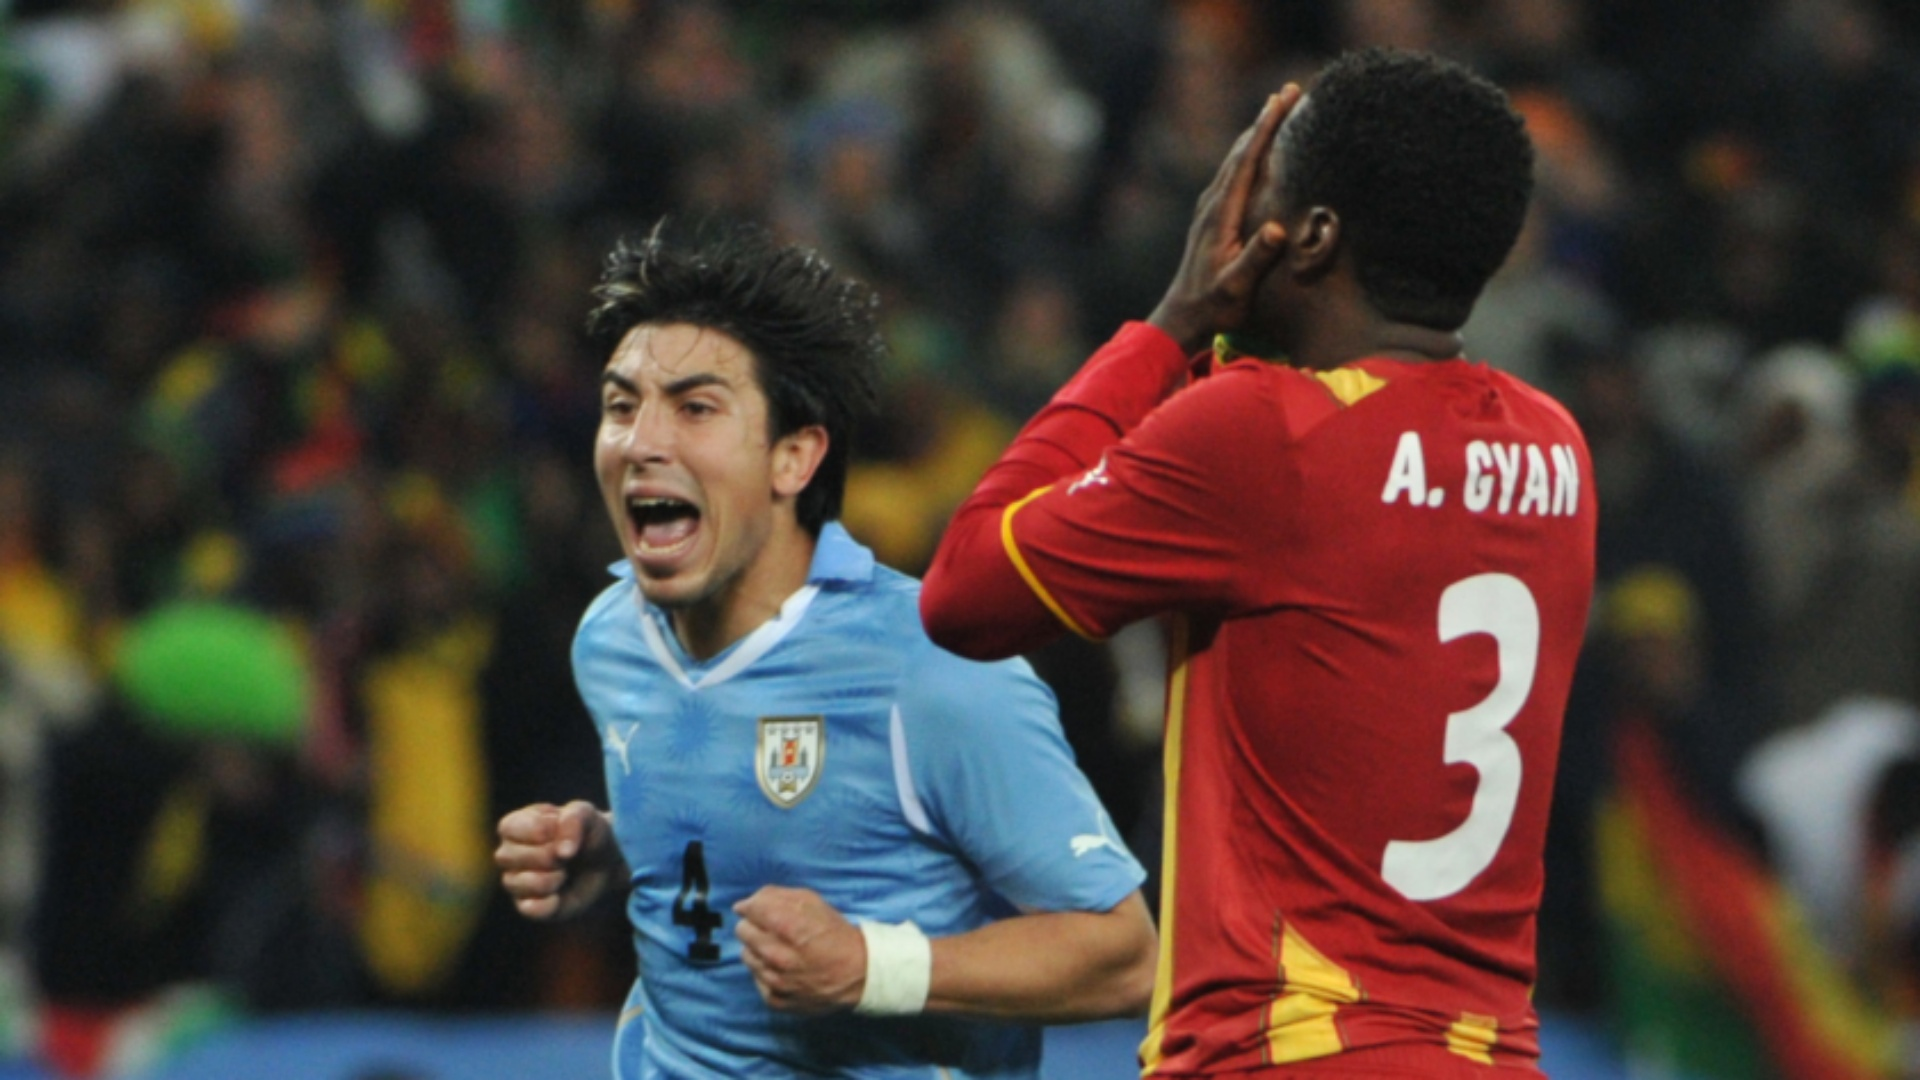 'Uruguay penalty miss will haunt me for the rest of my life' - Ghana legend Gyan